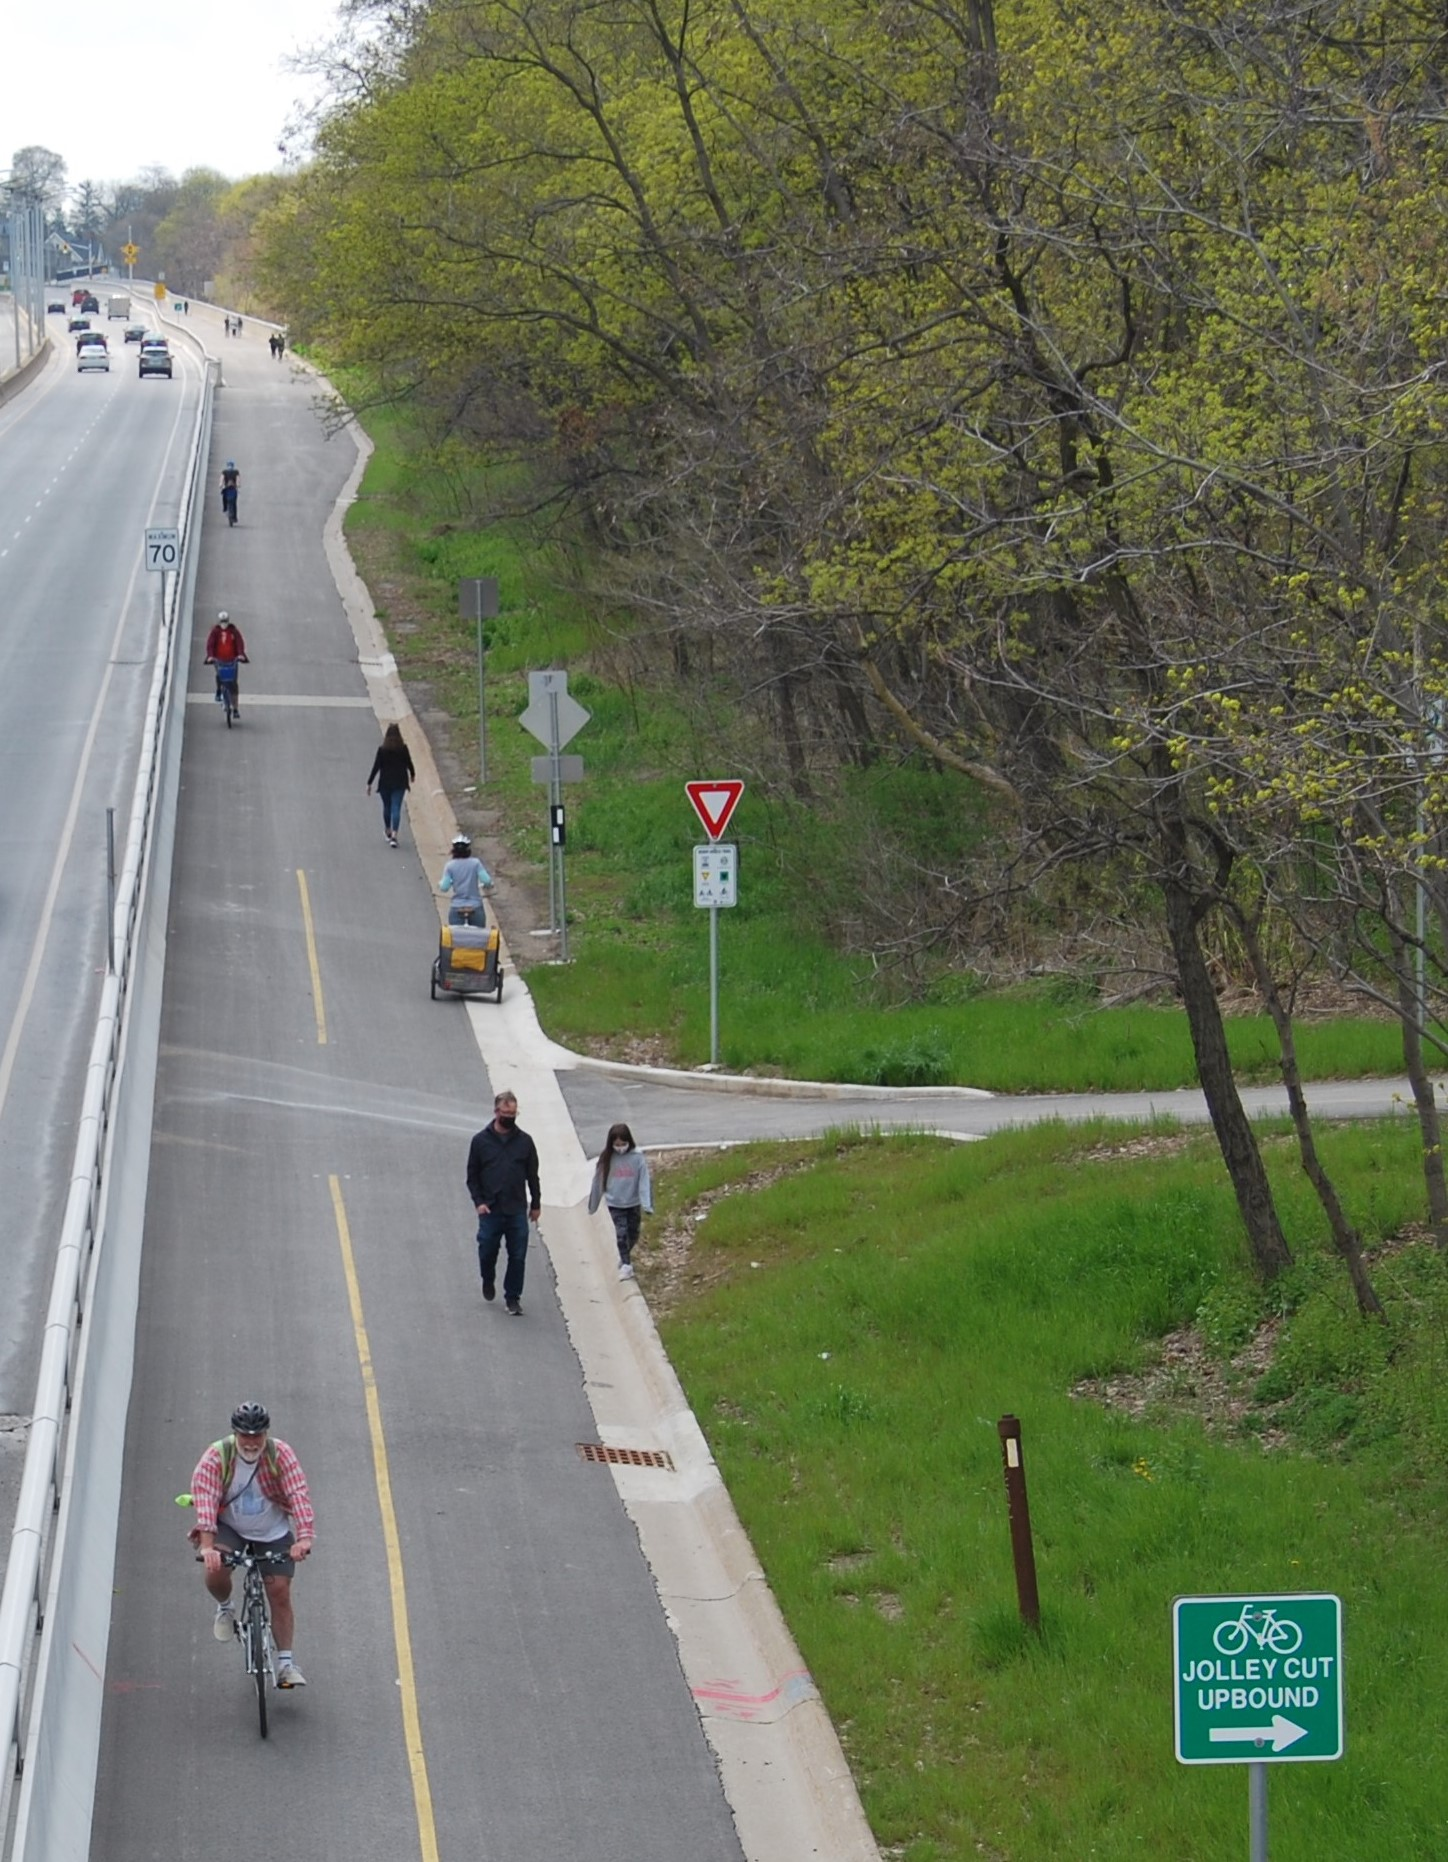 Cyclists on the keddy trail